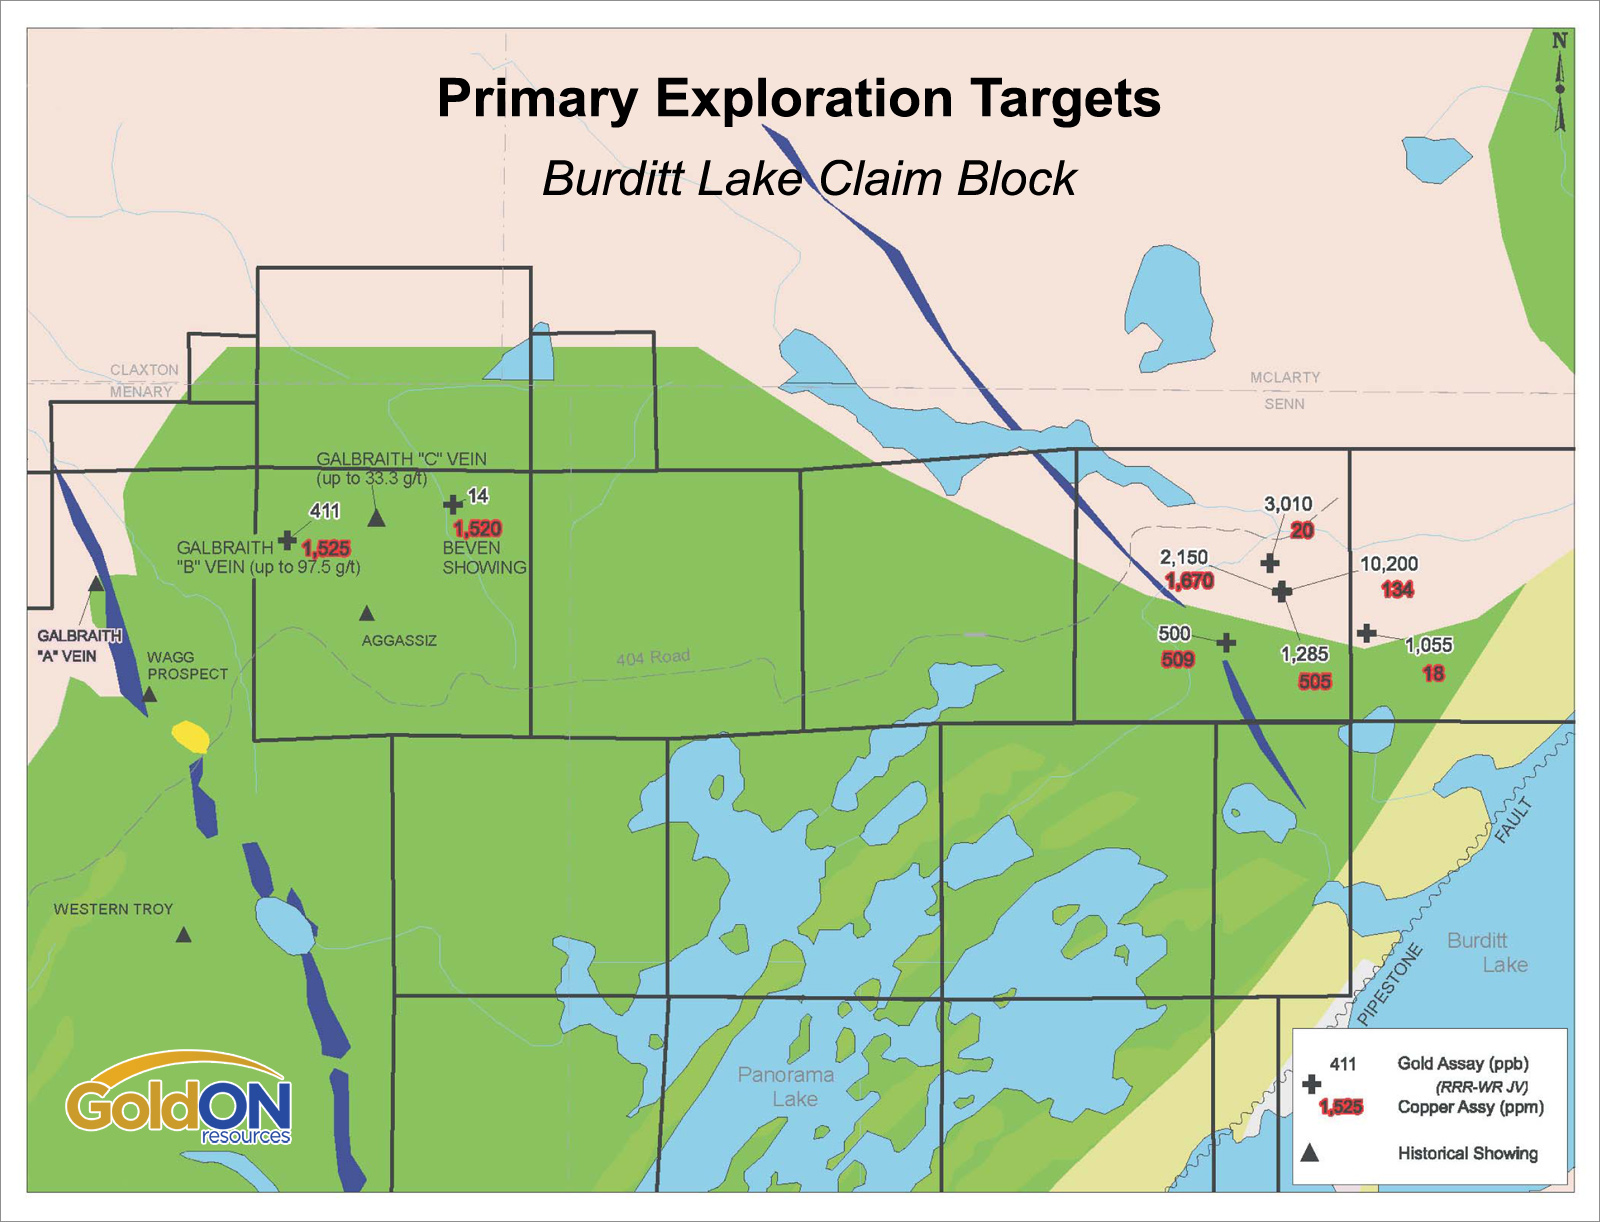 Primary Exploration Targets